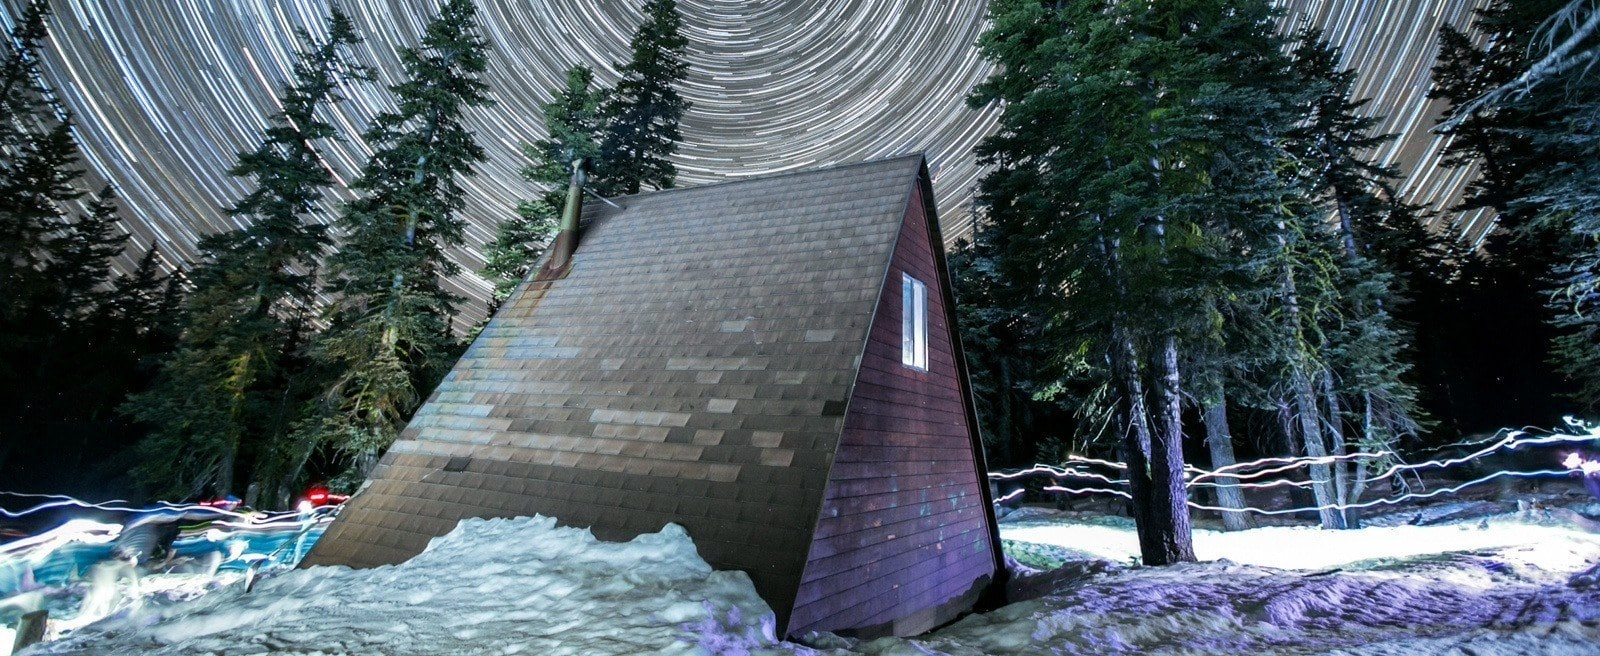 Clair Tappan Lodge / Plan a fun and cozy getaway to one of these winter backcountry huts that are accessible via snowshoeing, cross-country, or backcountry skiing.